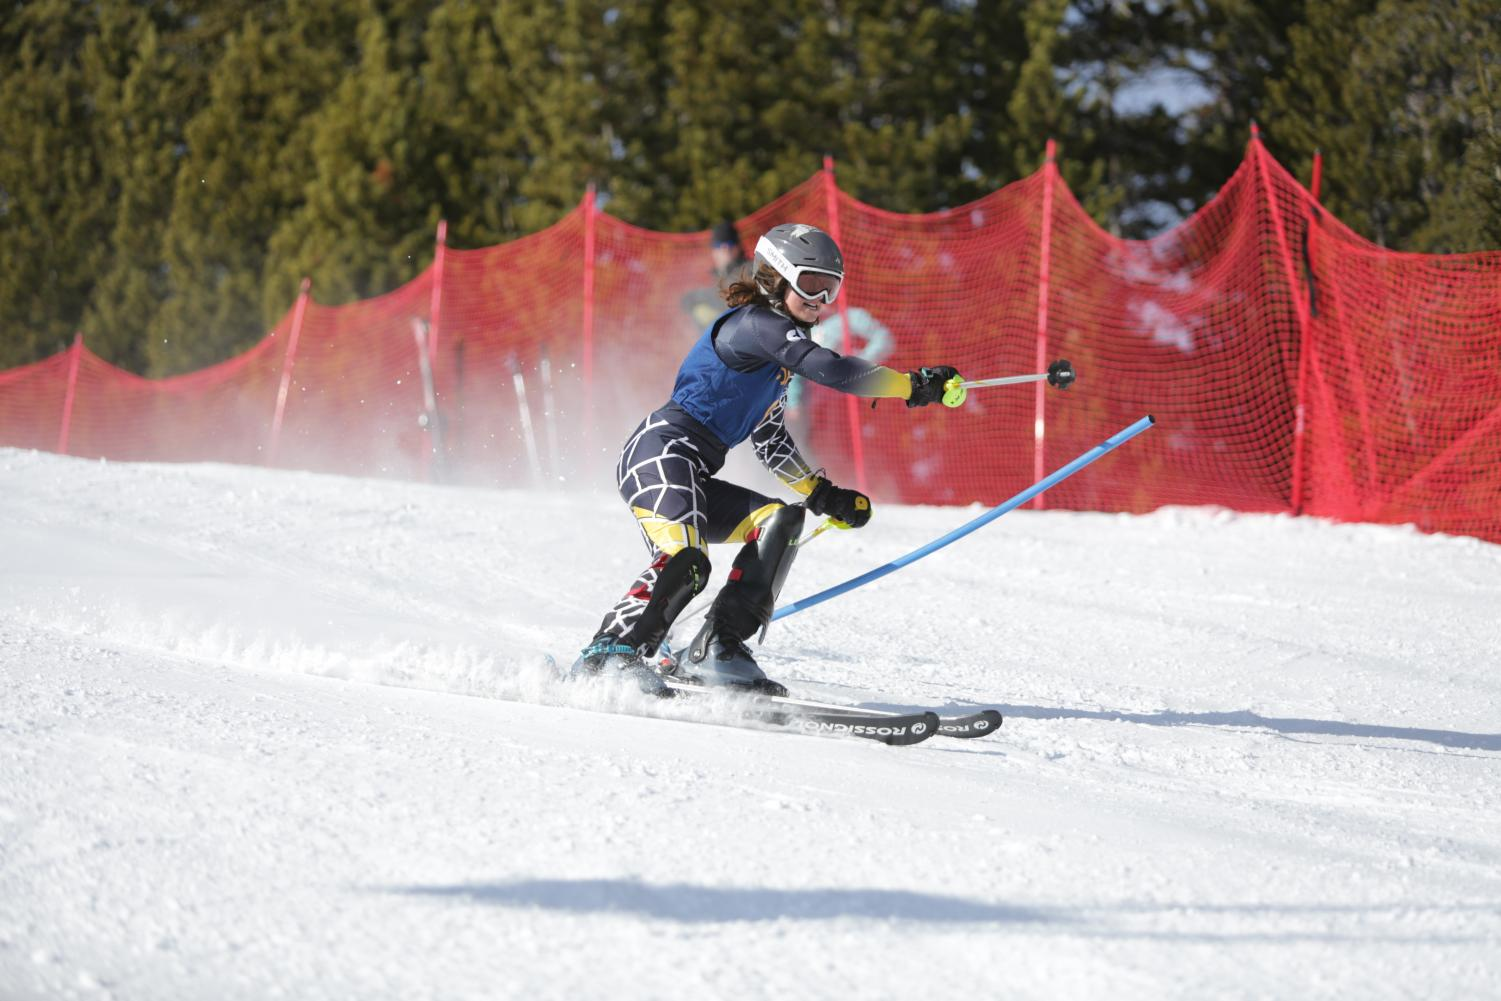 Natalie call races down a run at Red Lodge Mountain during an alpine ski meet. Equipment for skiing, while expensive, usually lasts throughout multiple seasons.